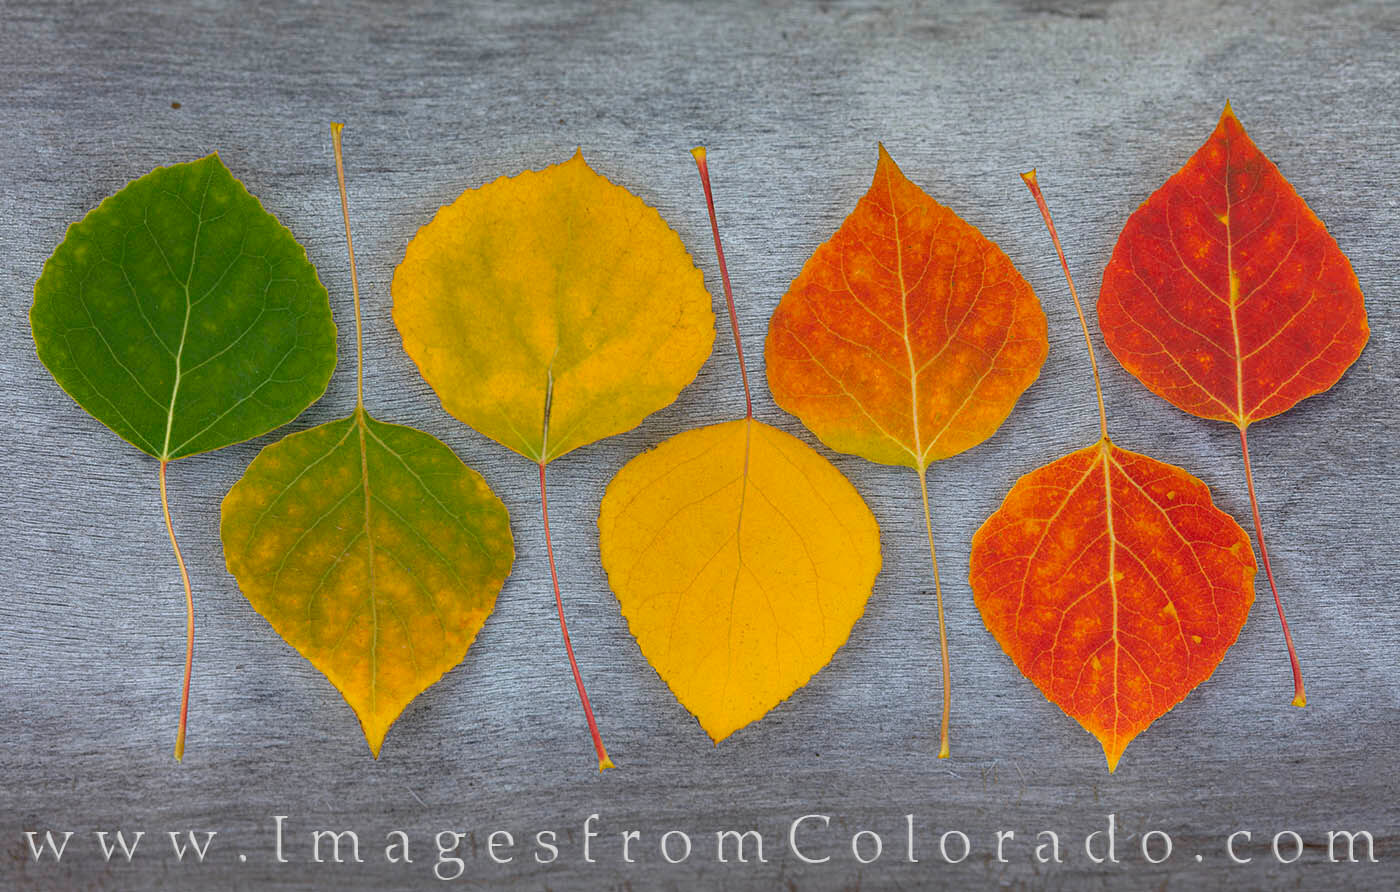 Colors of Aspen leaves flow from green to gold to red and display the range of beauty found each Fall in Colorado.